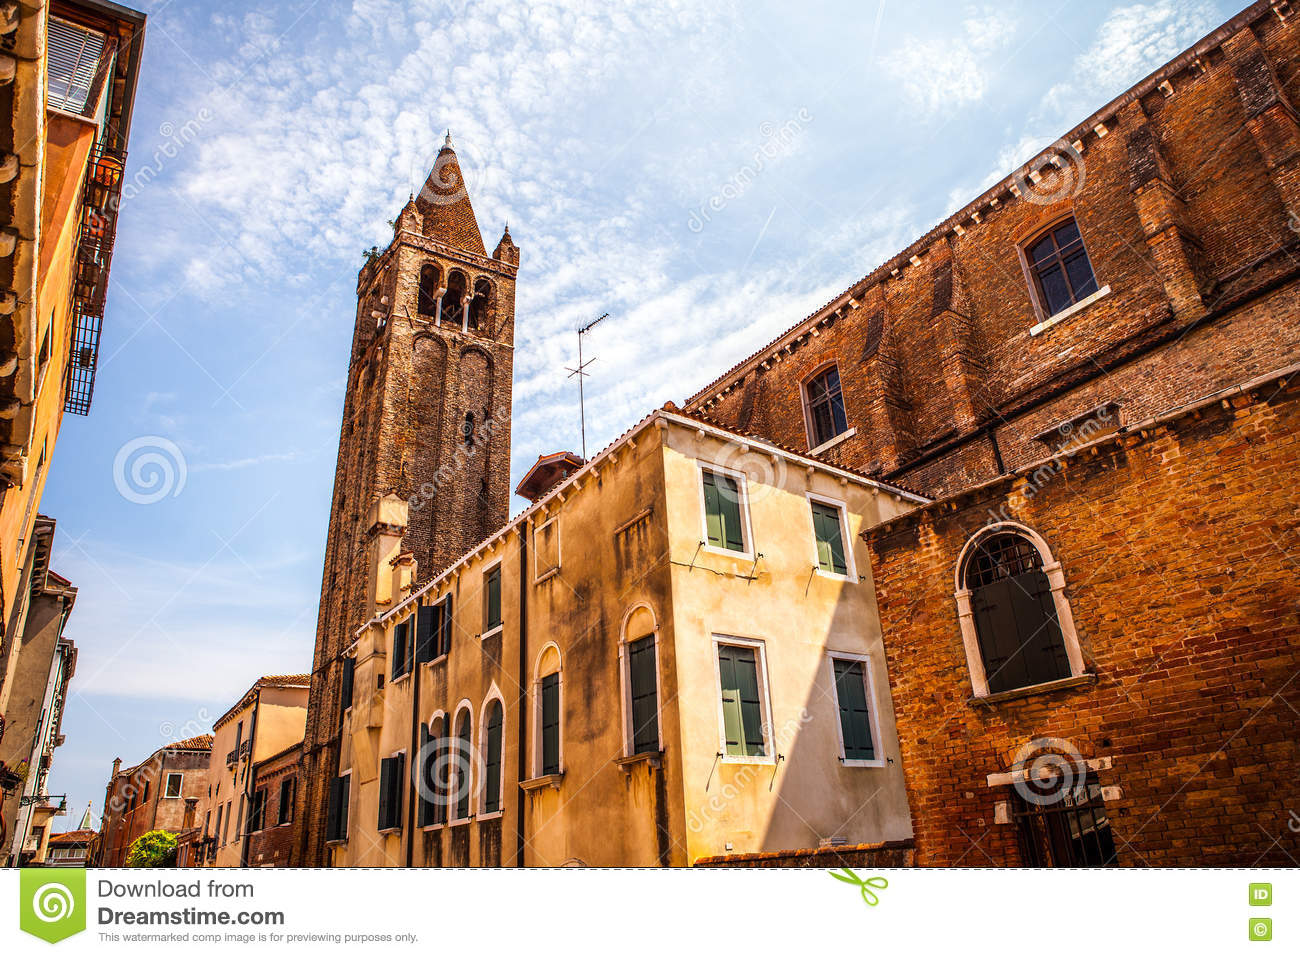 Famous Architecture Buildings famous architectural monuments and colorful facades of old